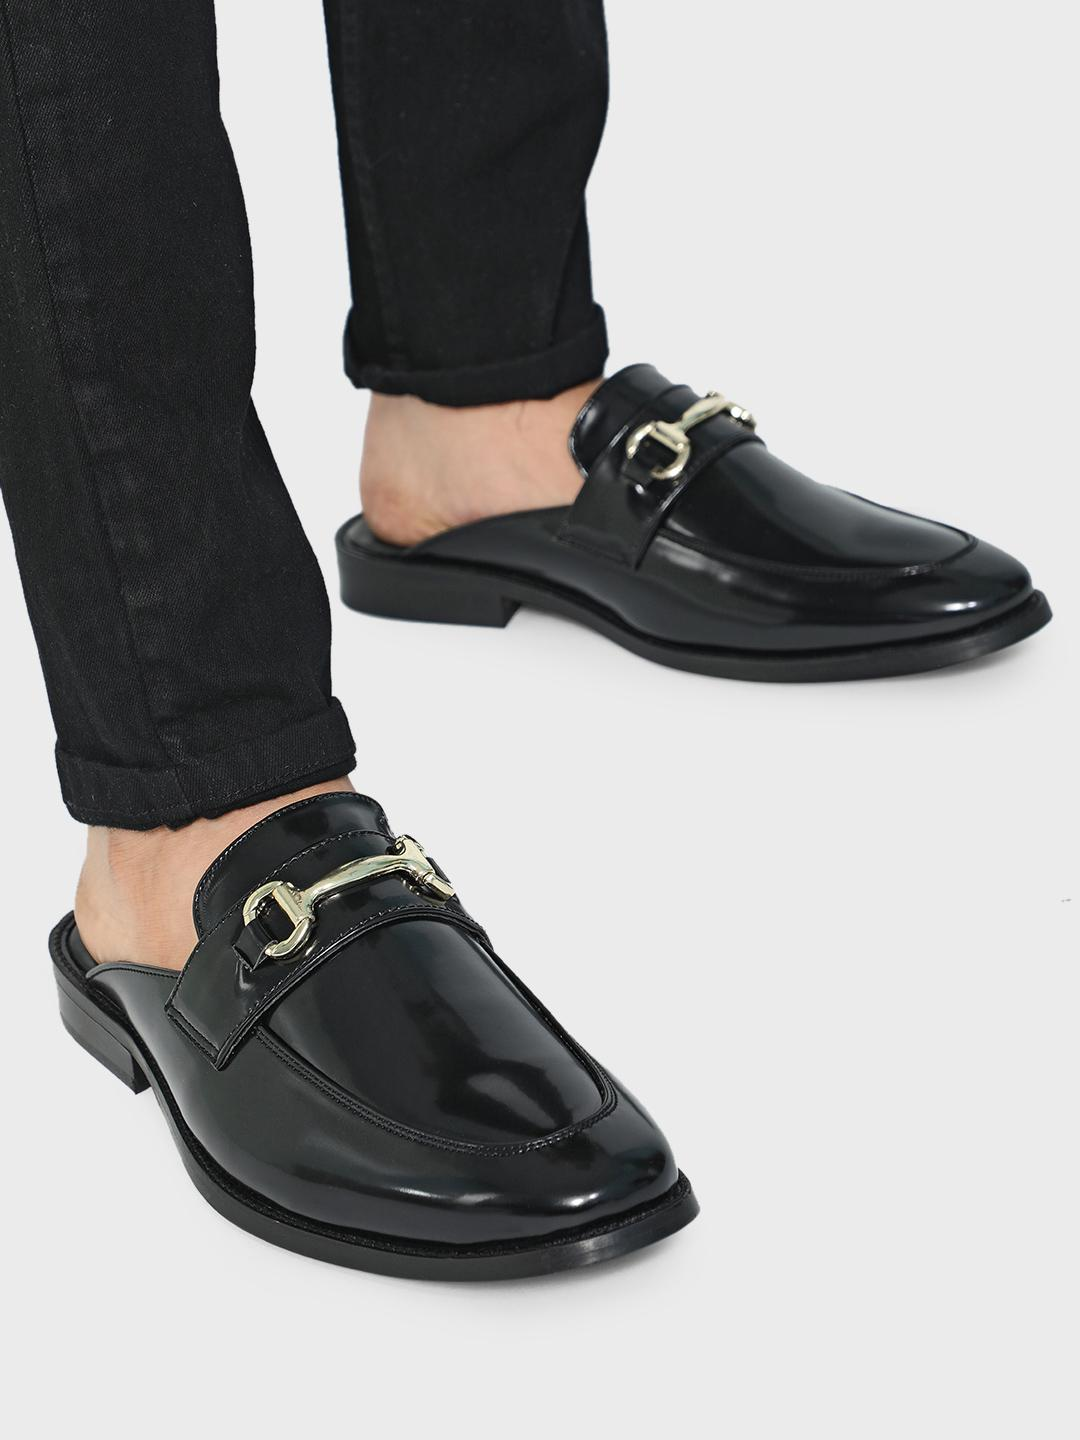 KOOVS Black Patent Finish Horsebit Loafers 1